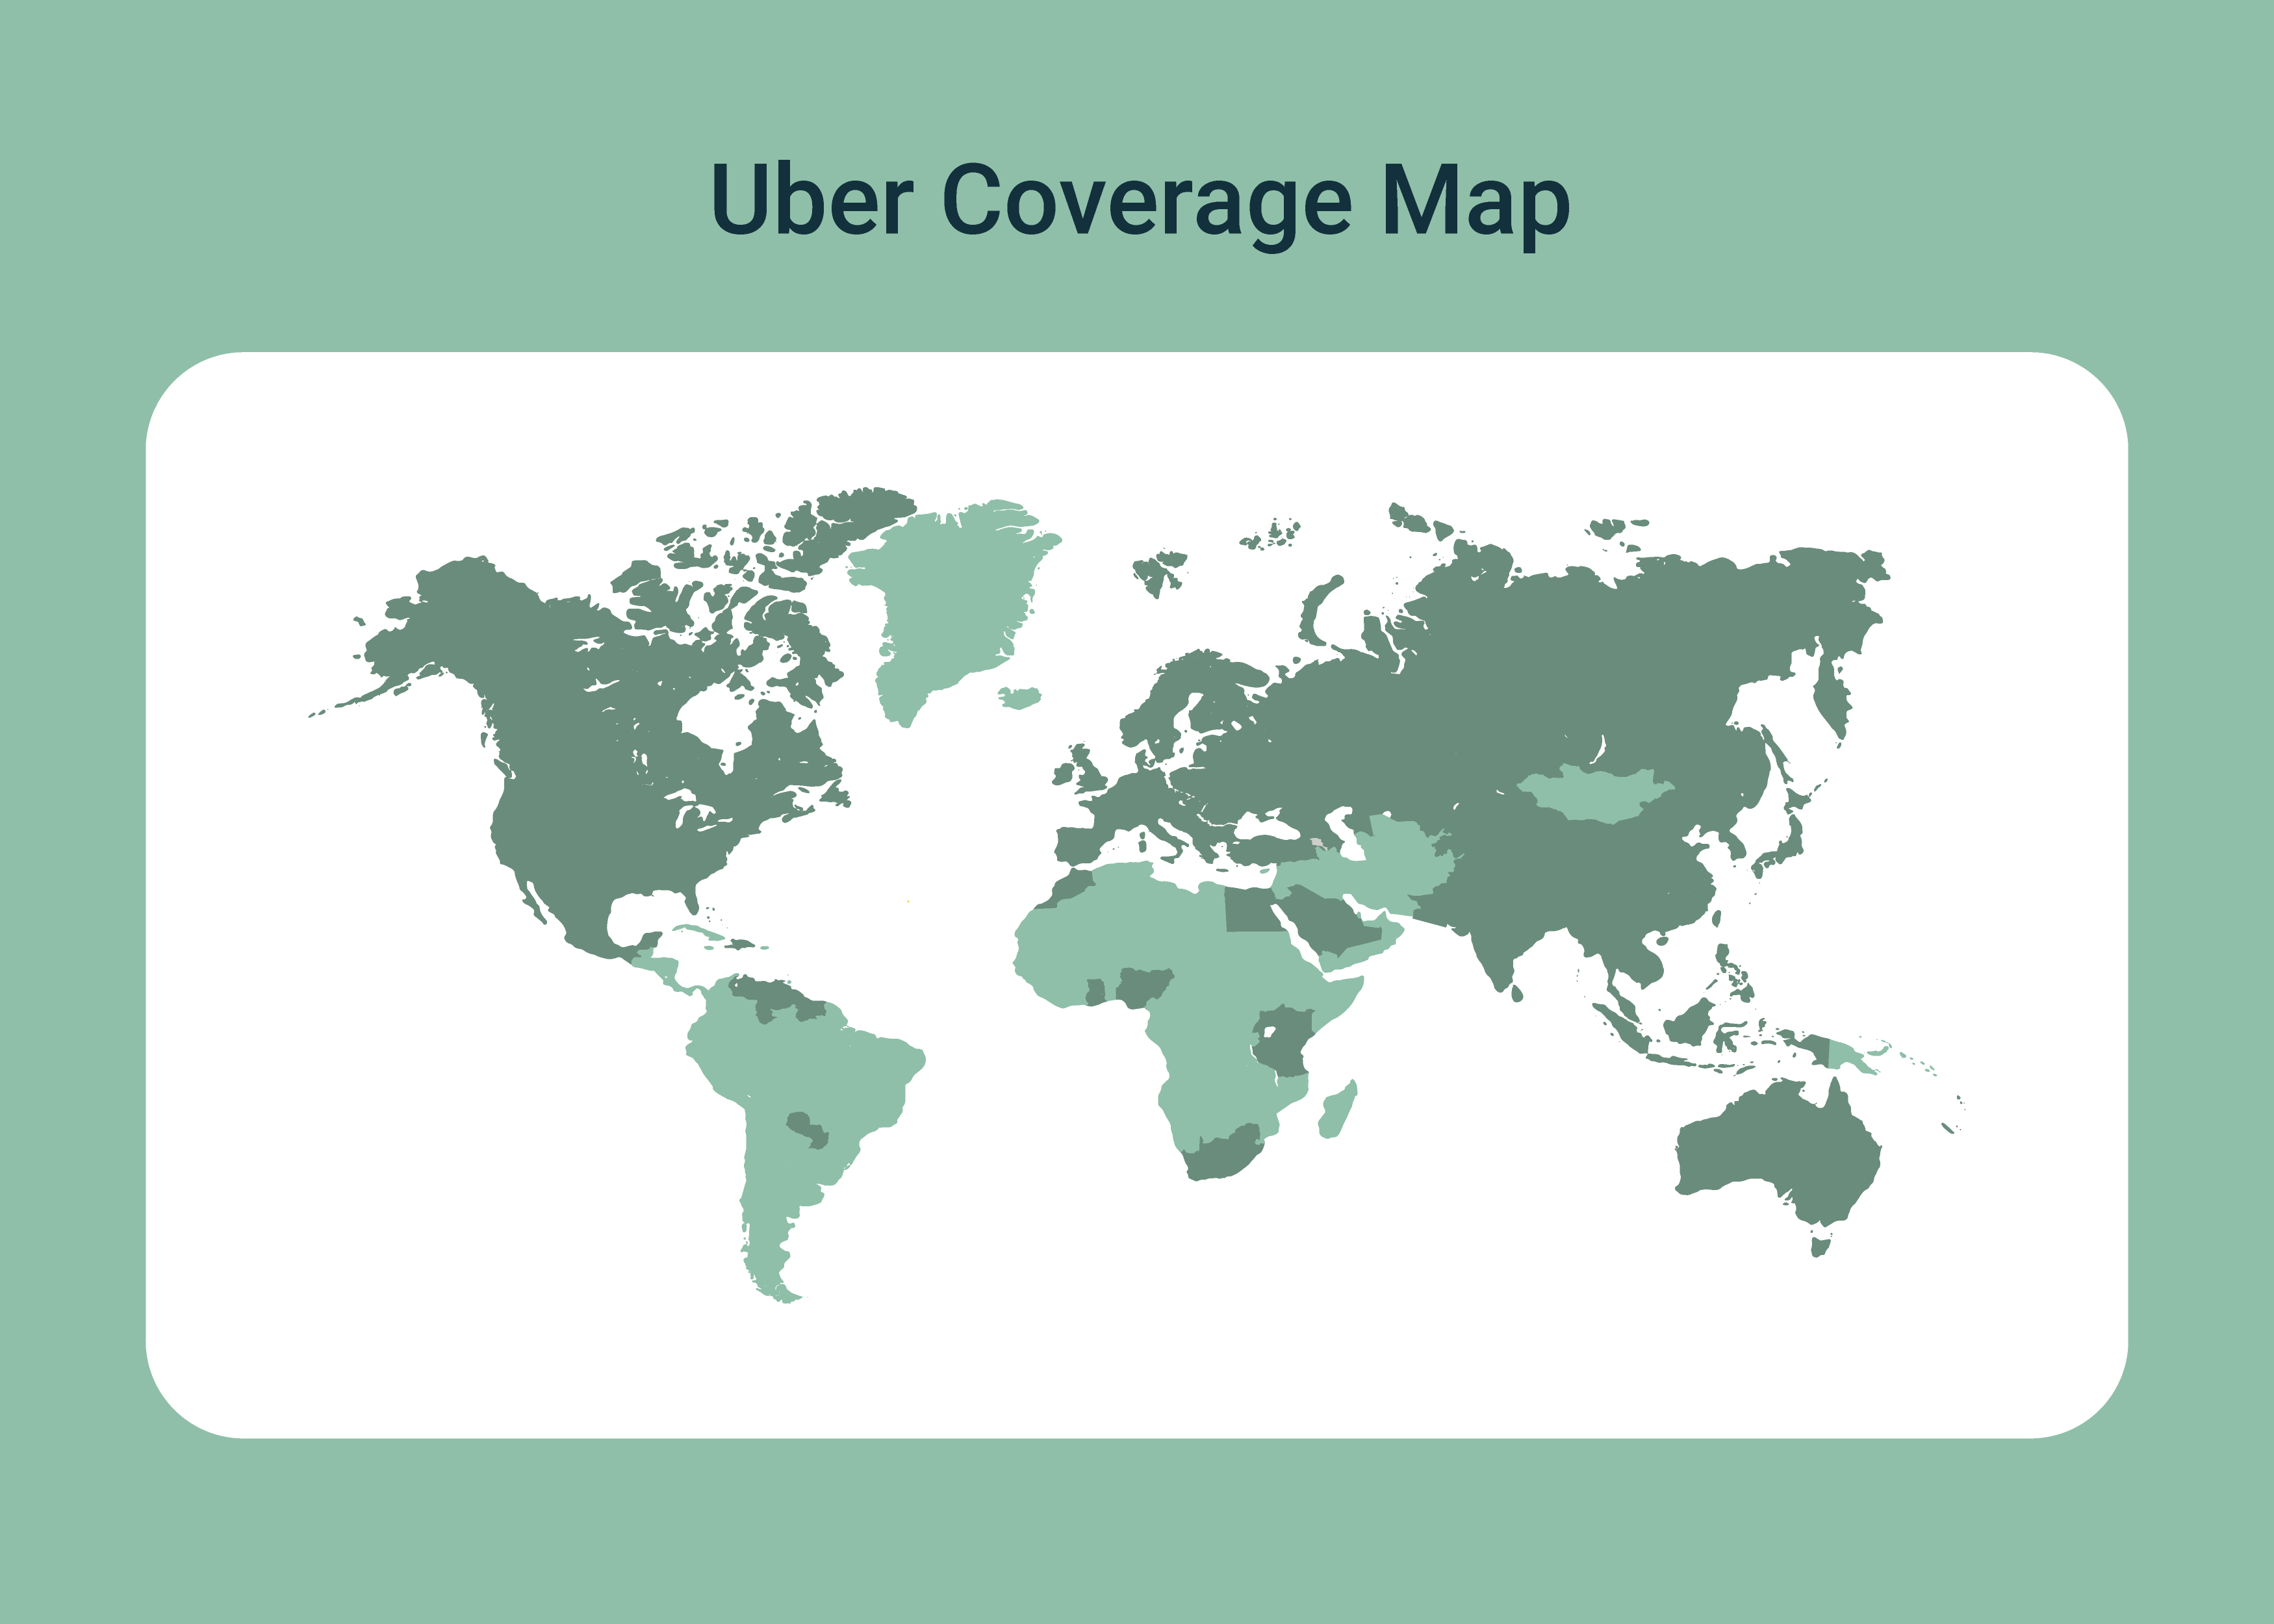 Countries Where Uber is Possible